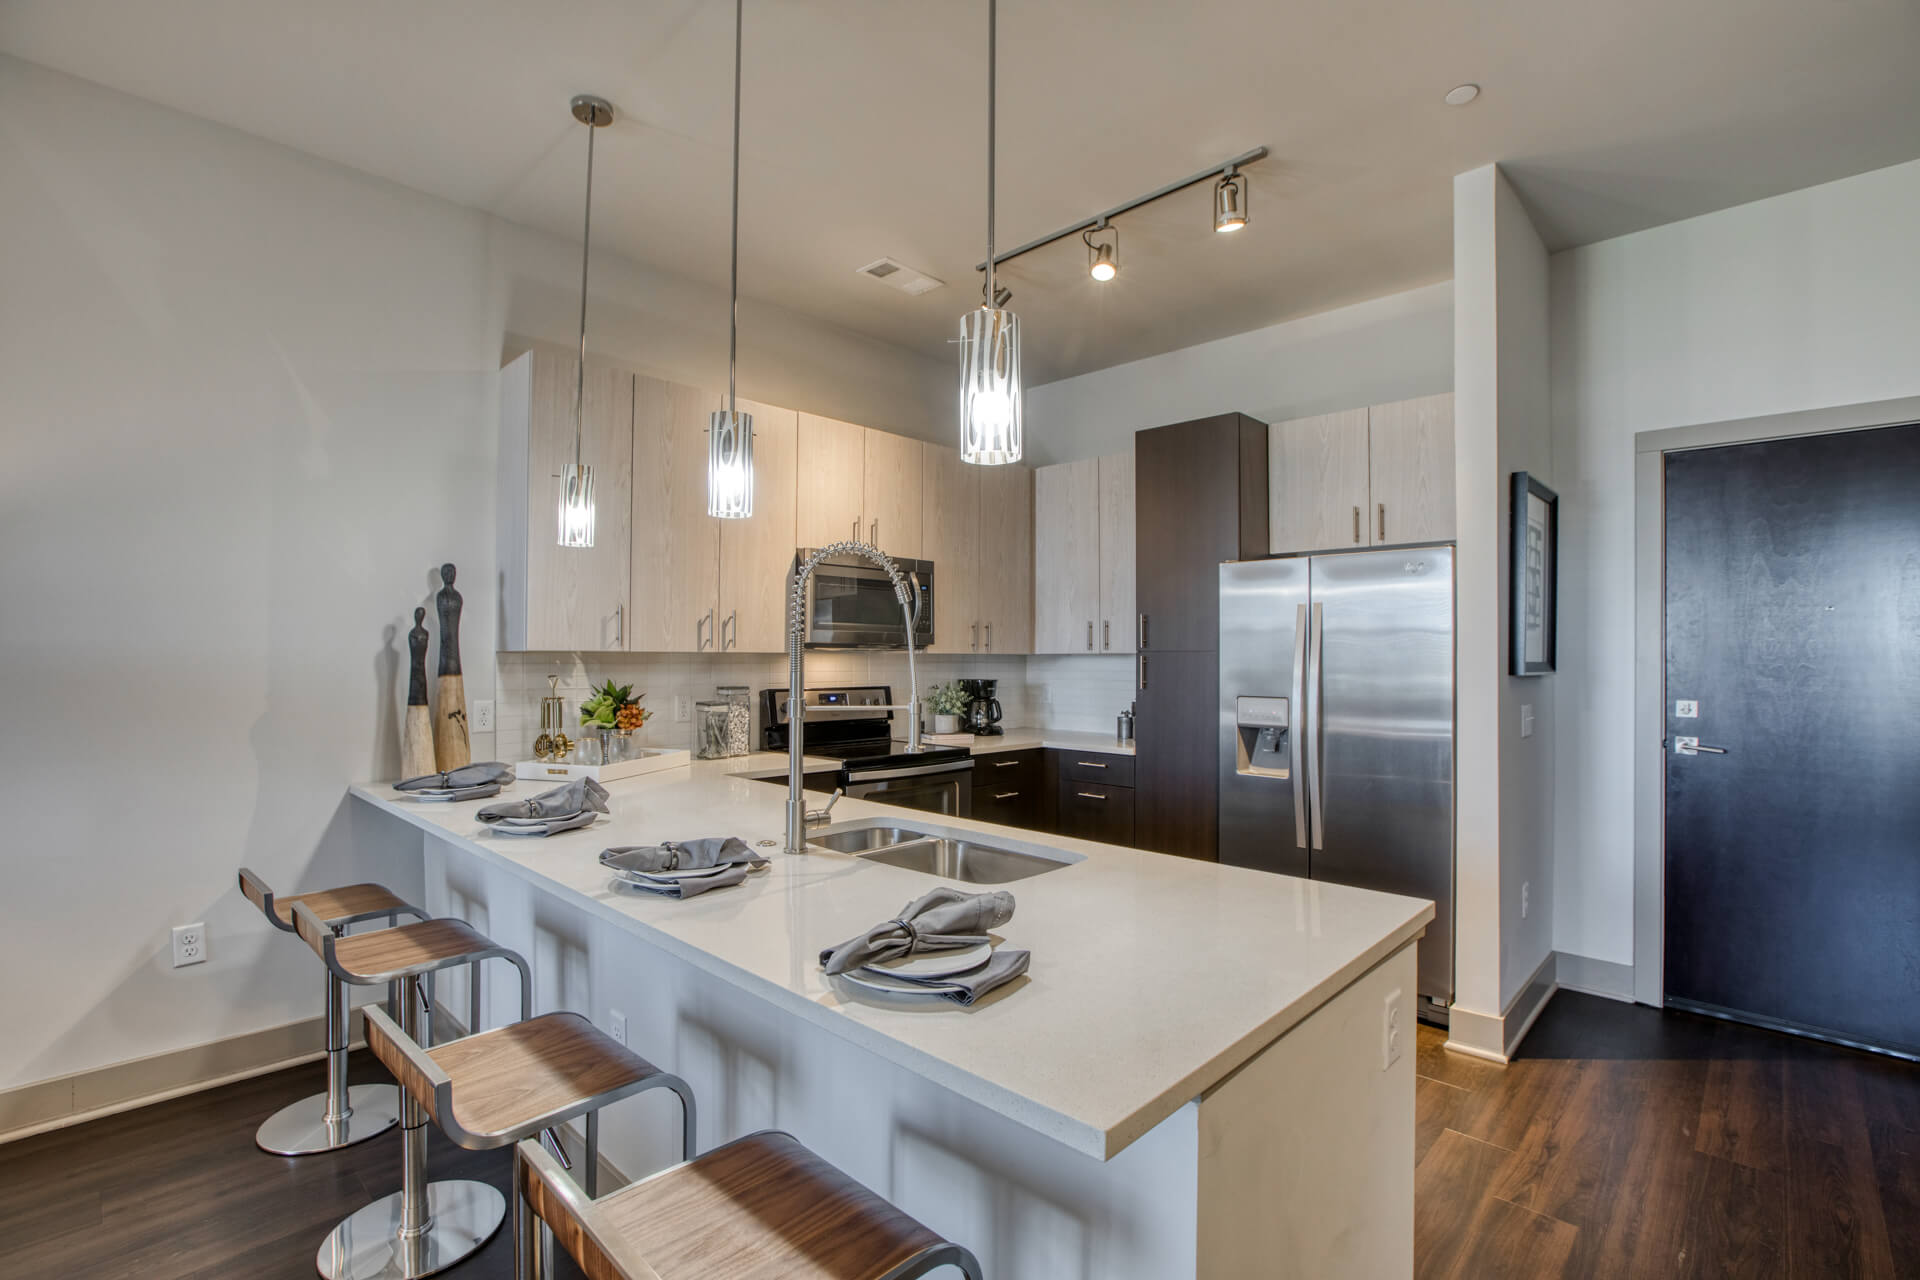 Eat-In Kitchen Table With Sink at Centric LoHi by Windsor, Denver